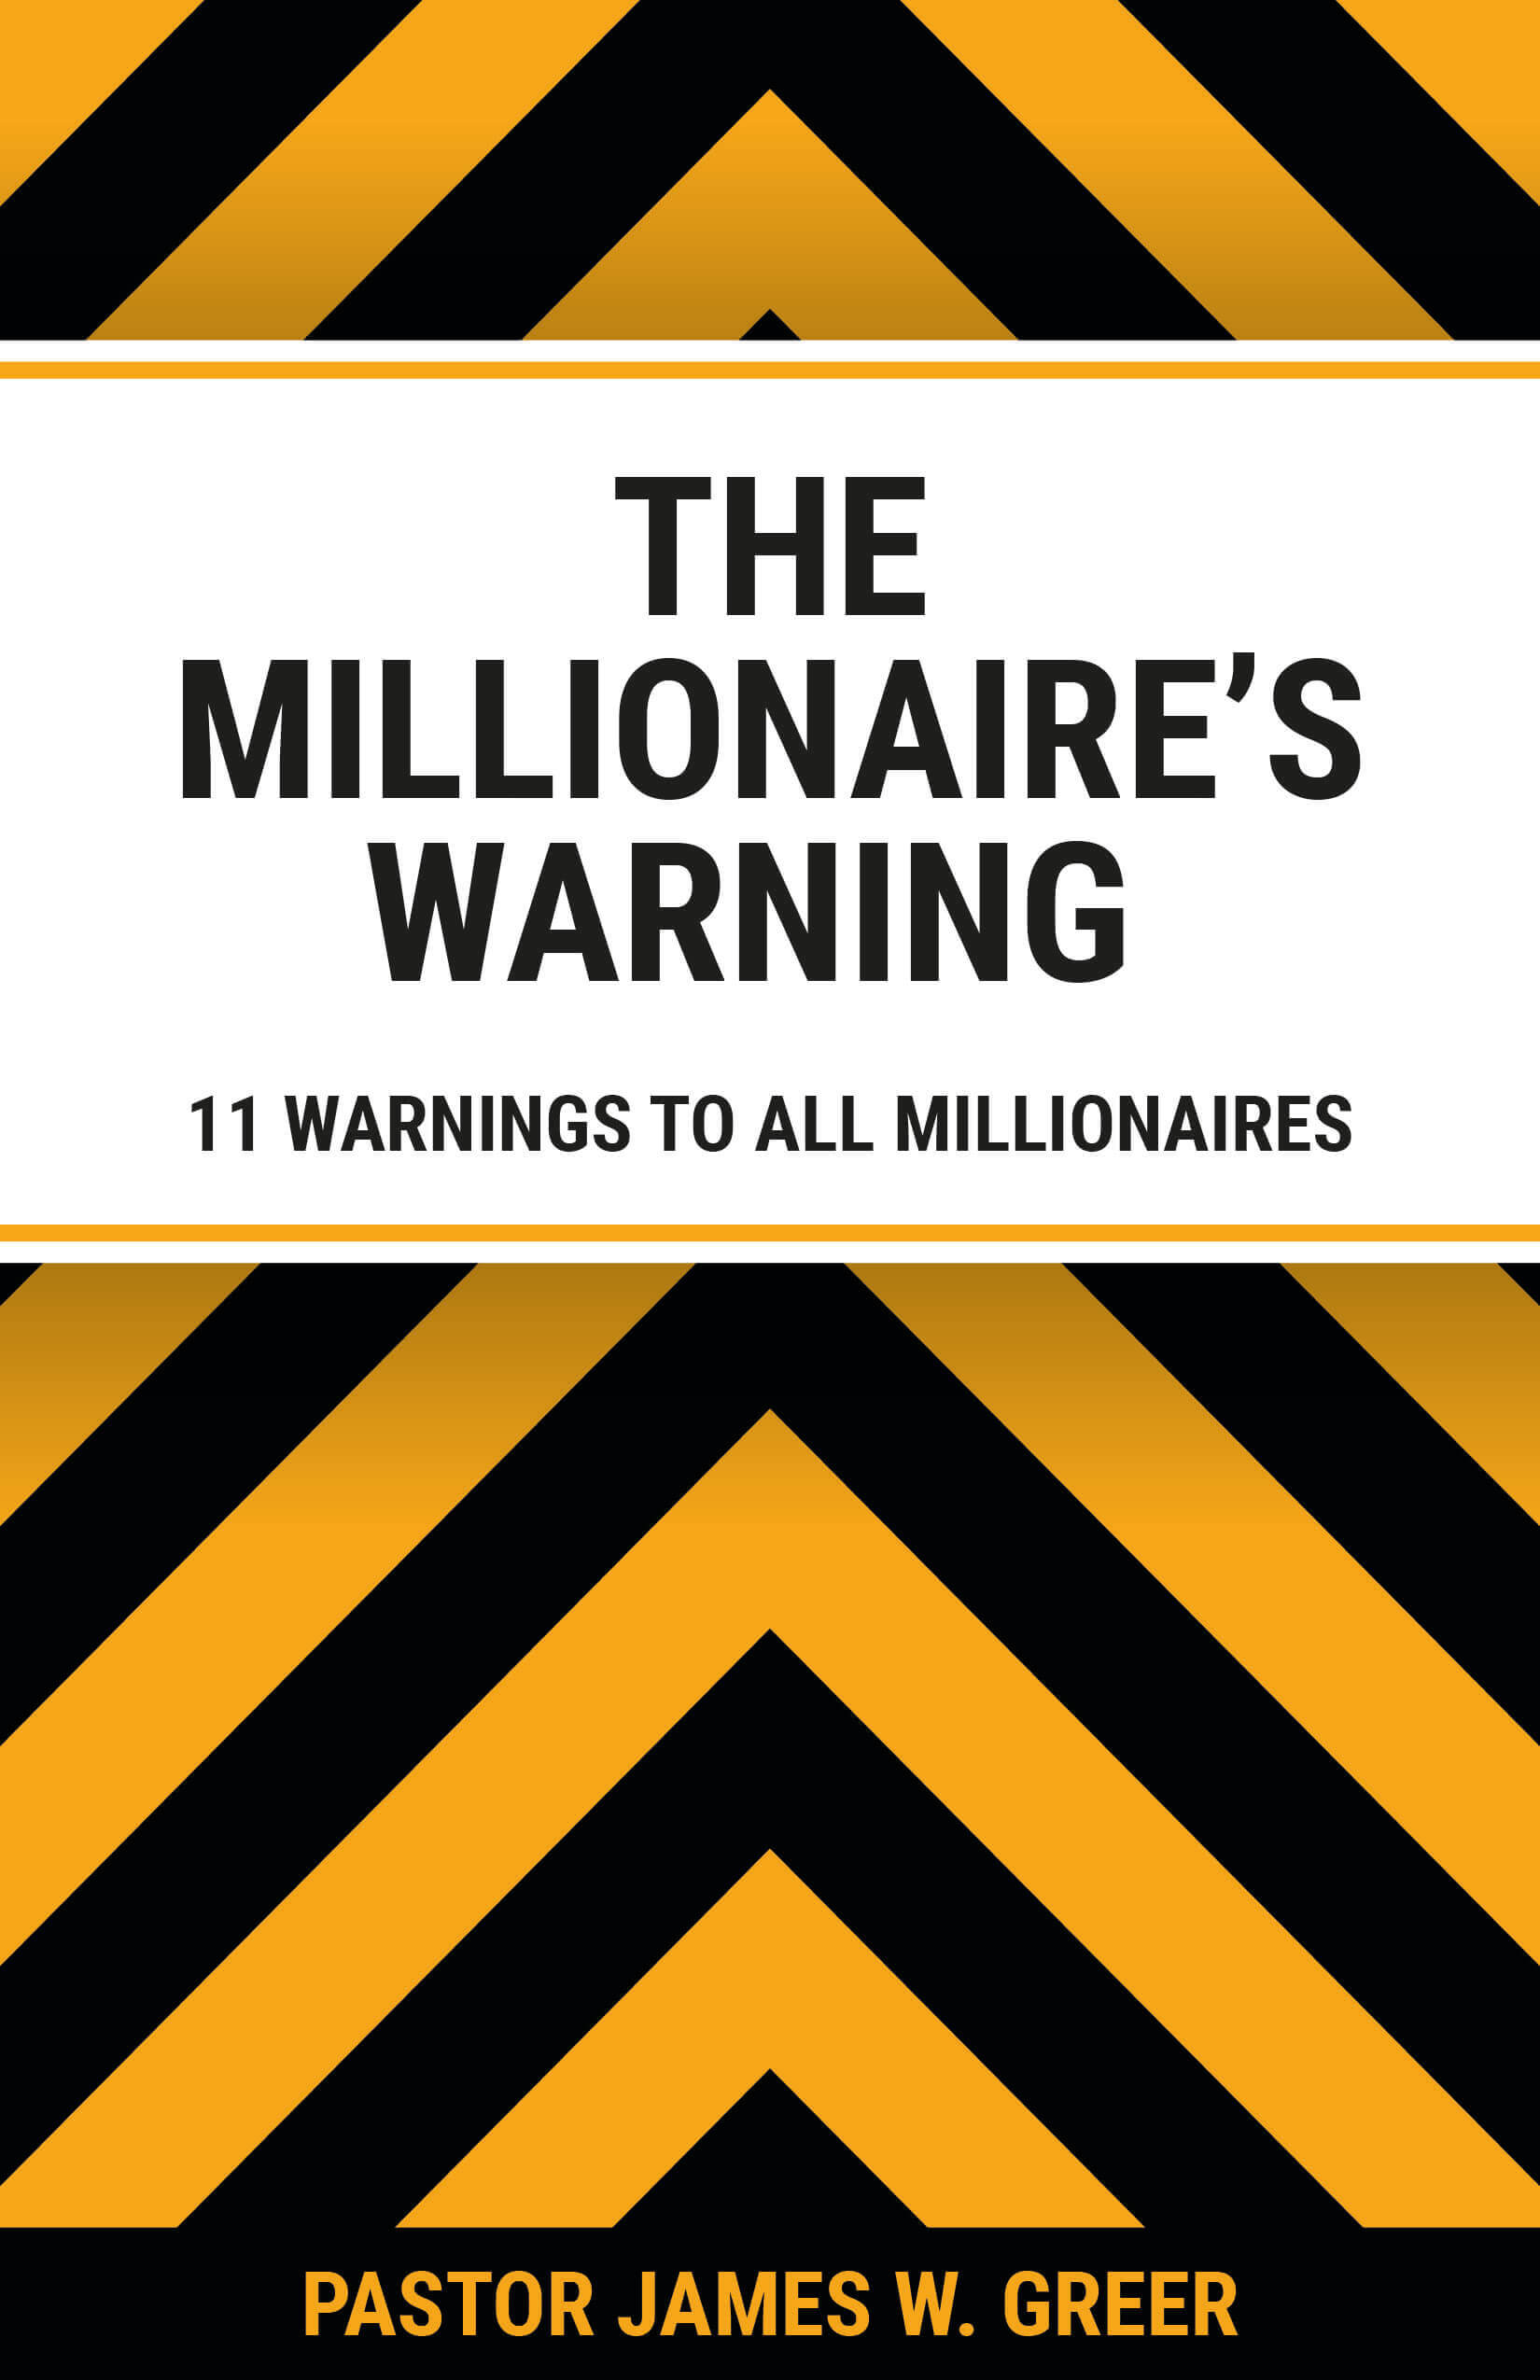 11 Warning to All Millionaires